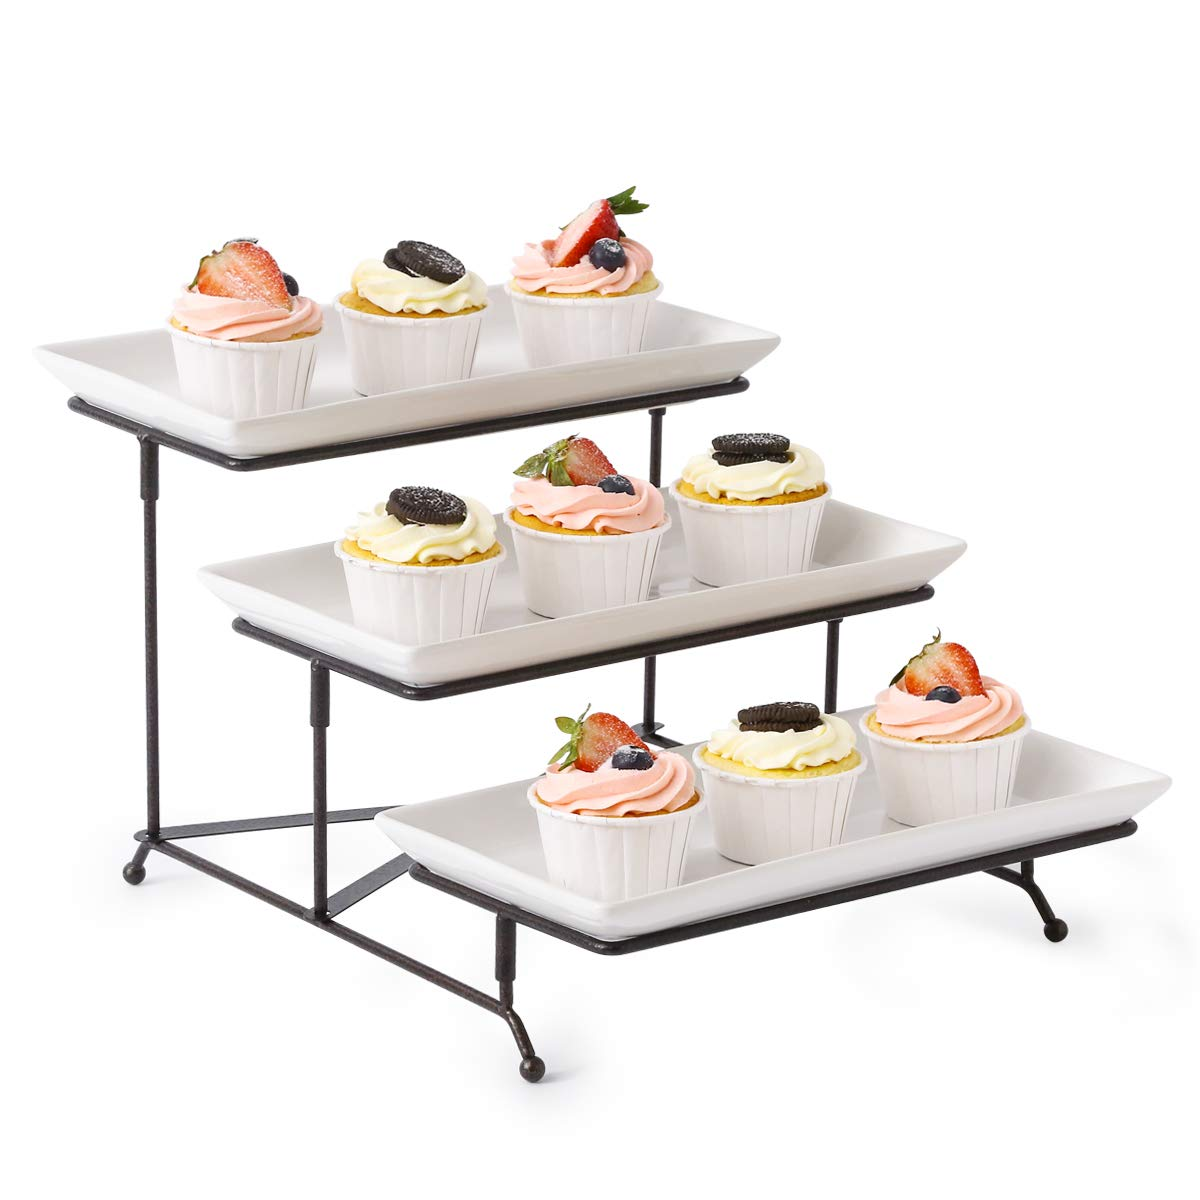 3 Tier Serving Stand Collapsible Sturdier Rack with 3 Porcelain Serving Platters Tier Serving Trays for Fruit Dessert Presentation Party Display Set by LAUCHUH